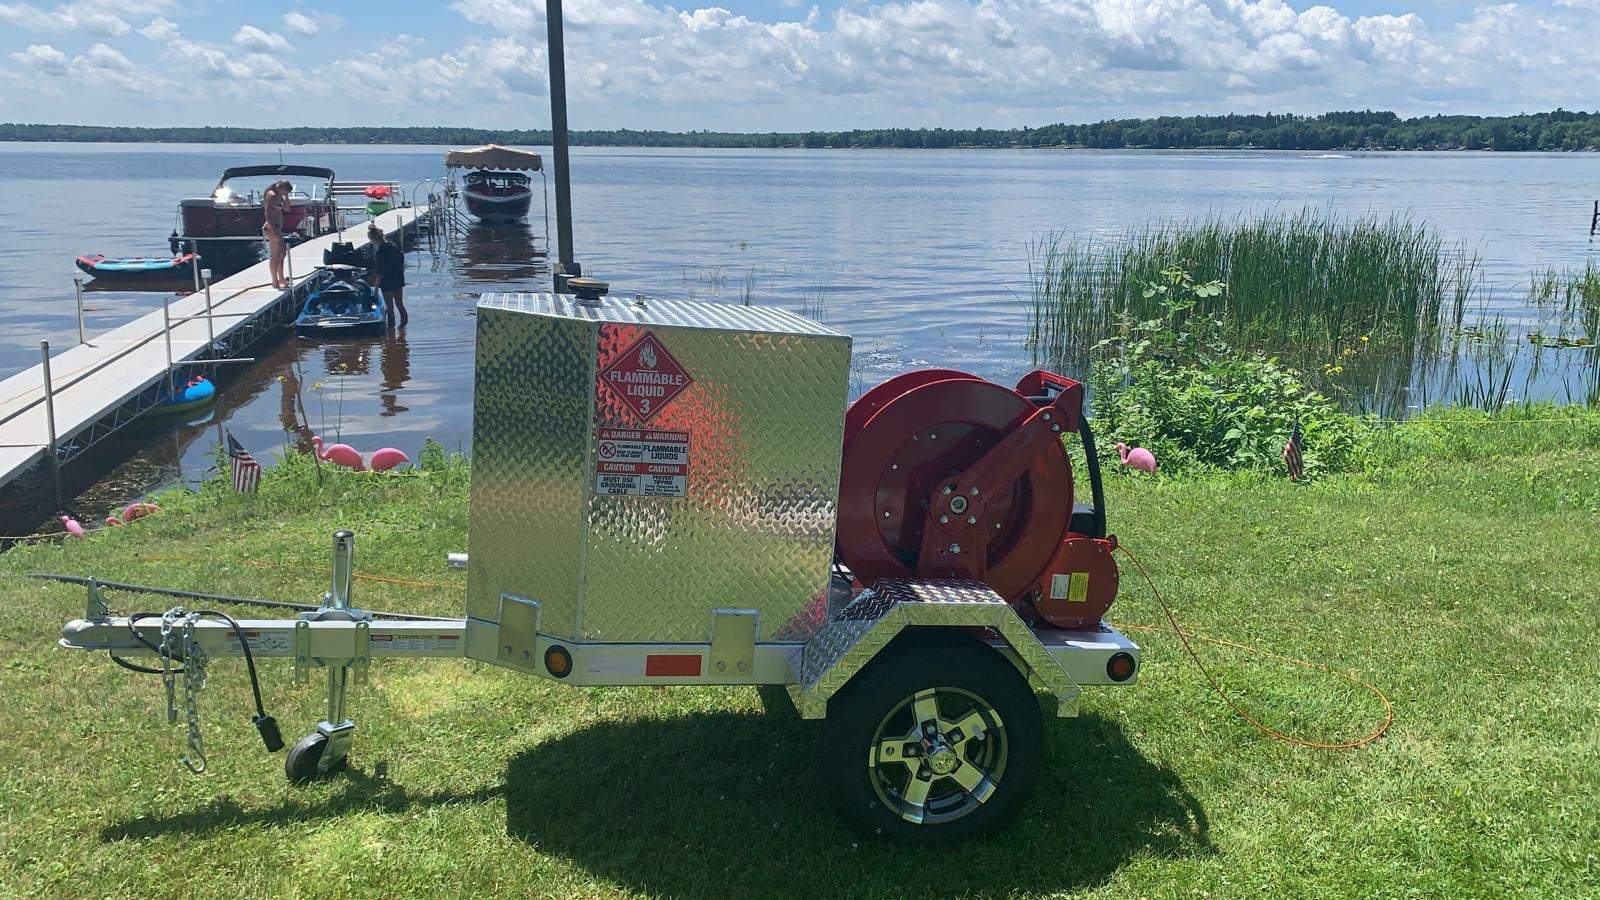 Robinson's new portable fuel trailer is a hit at the lake